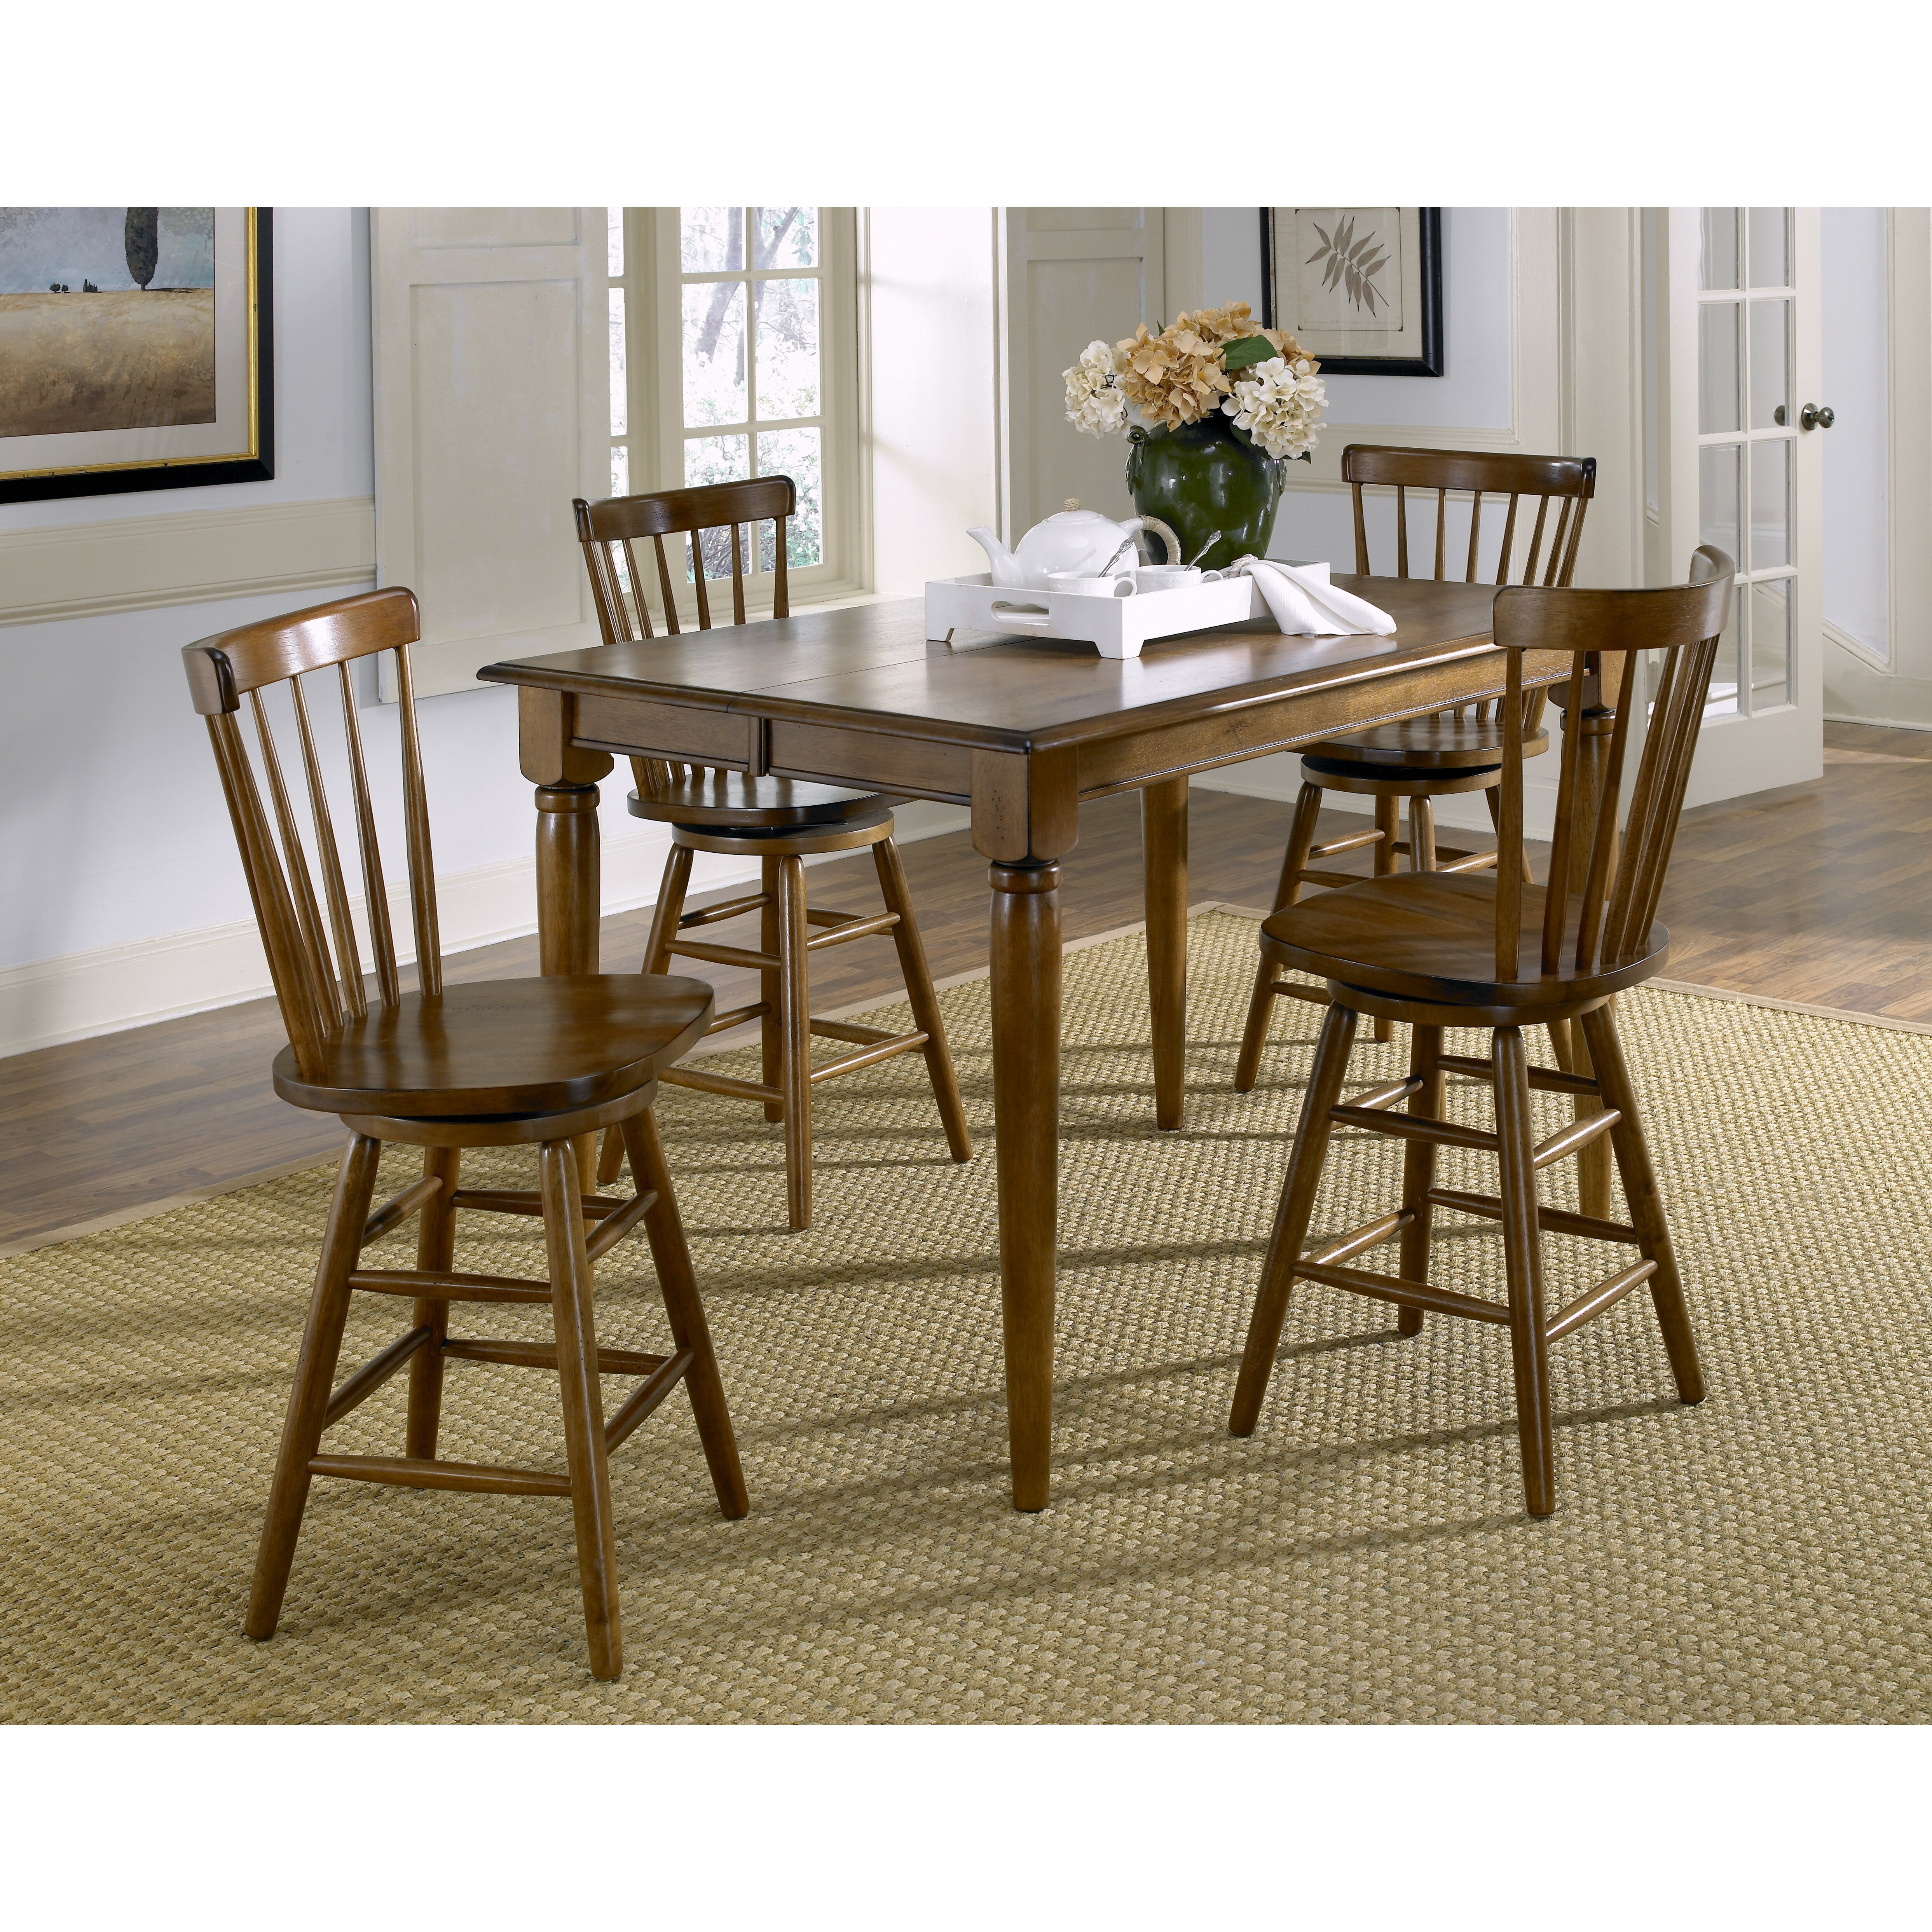 Casual Creations Patio Furniture August Grove Marni Bar Stool Reviews  Wayfair Supply .